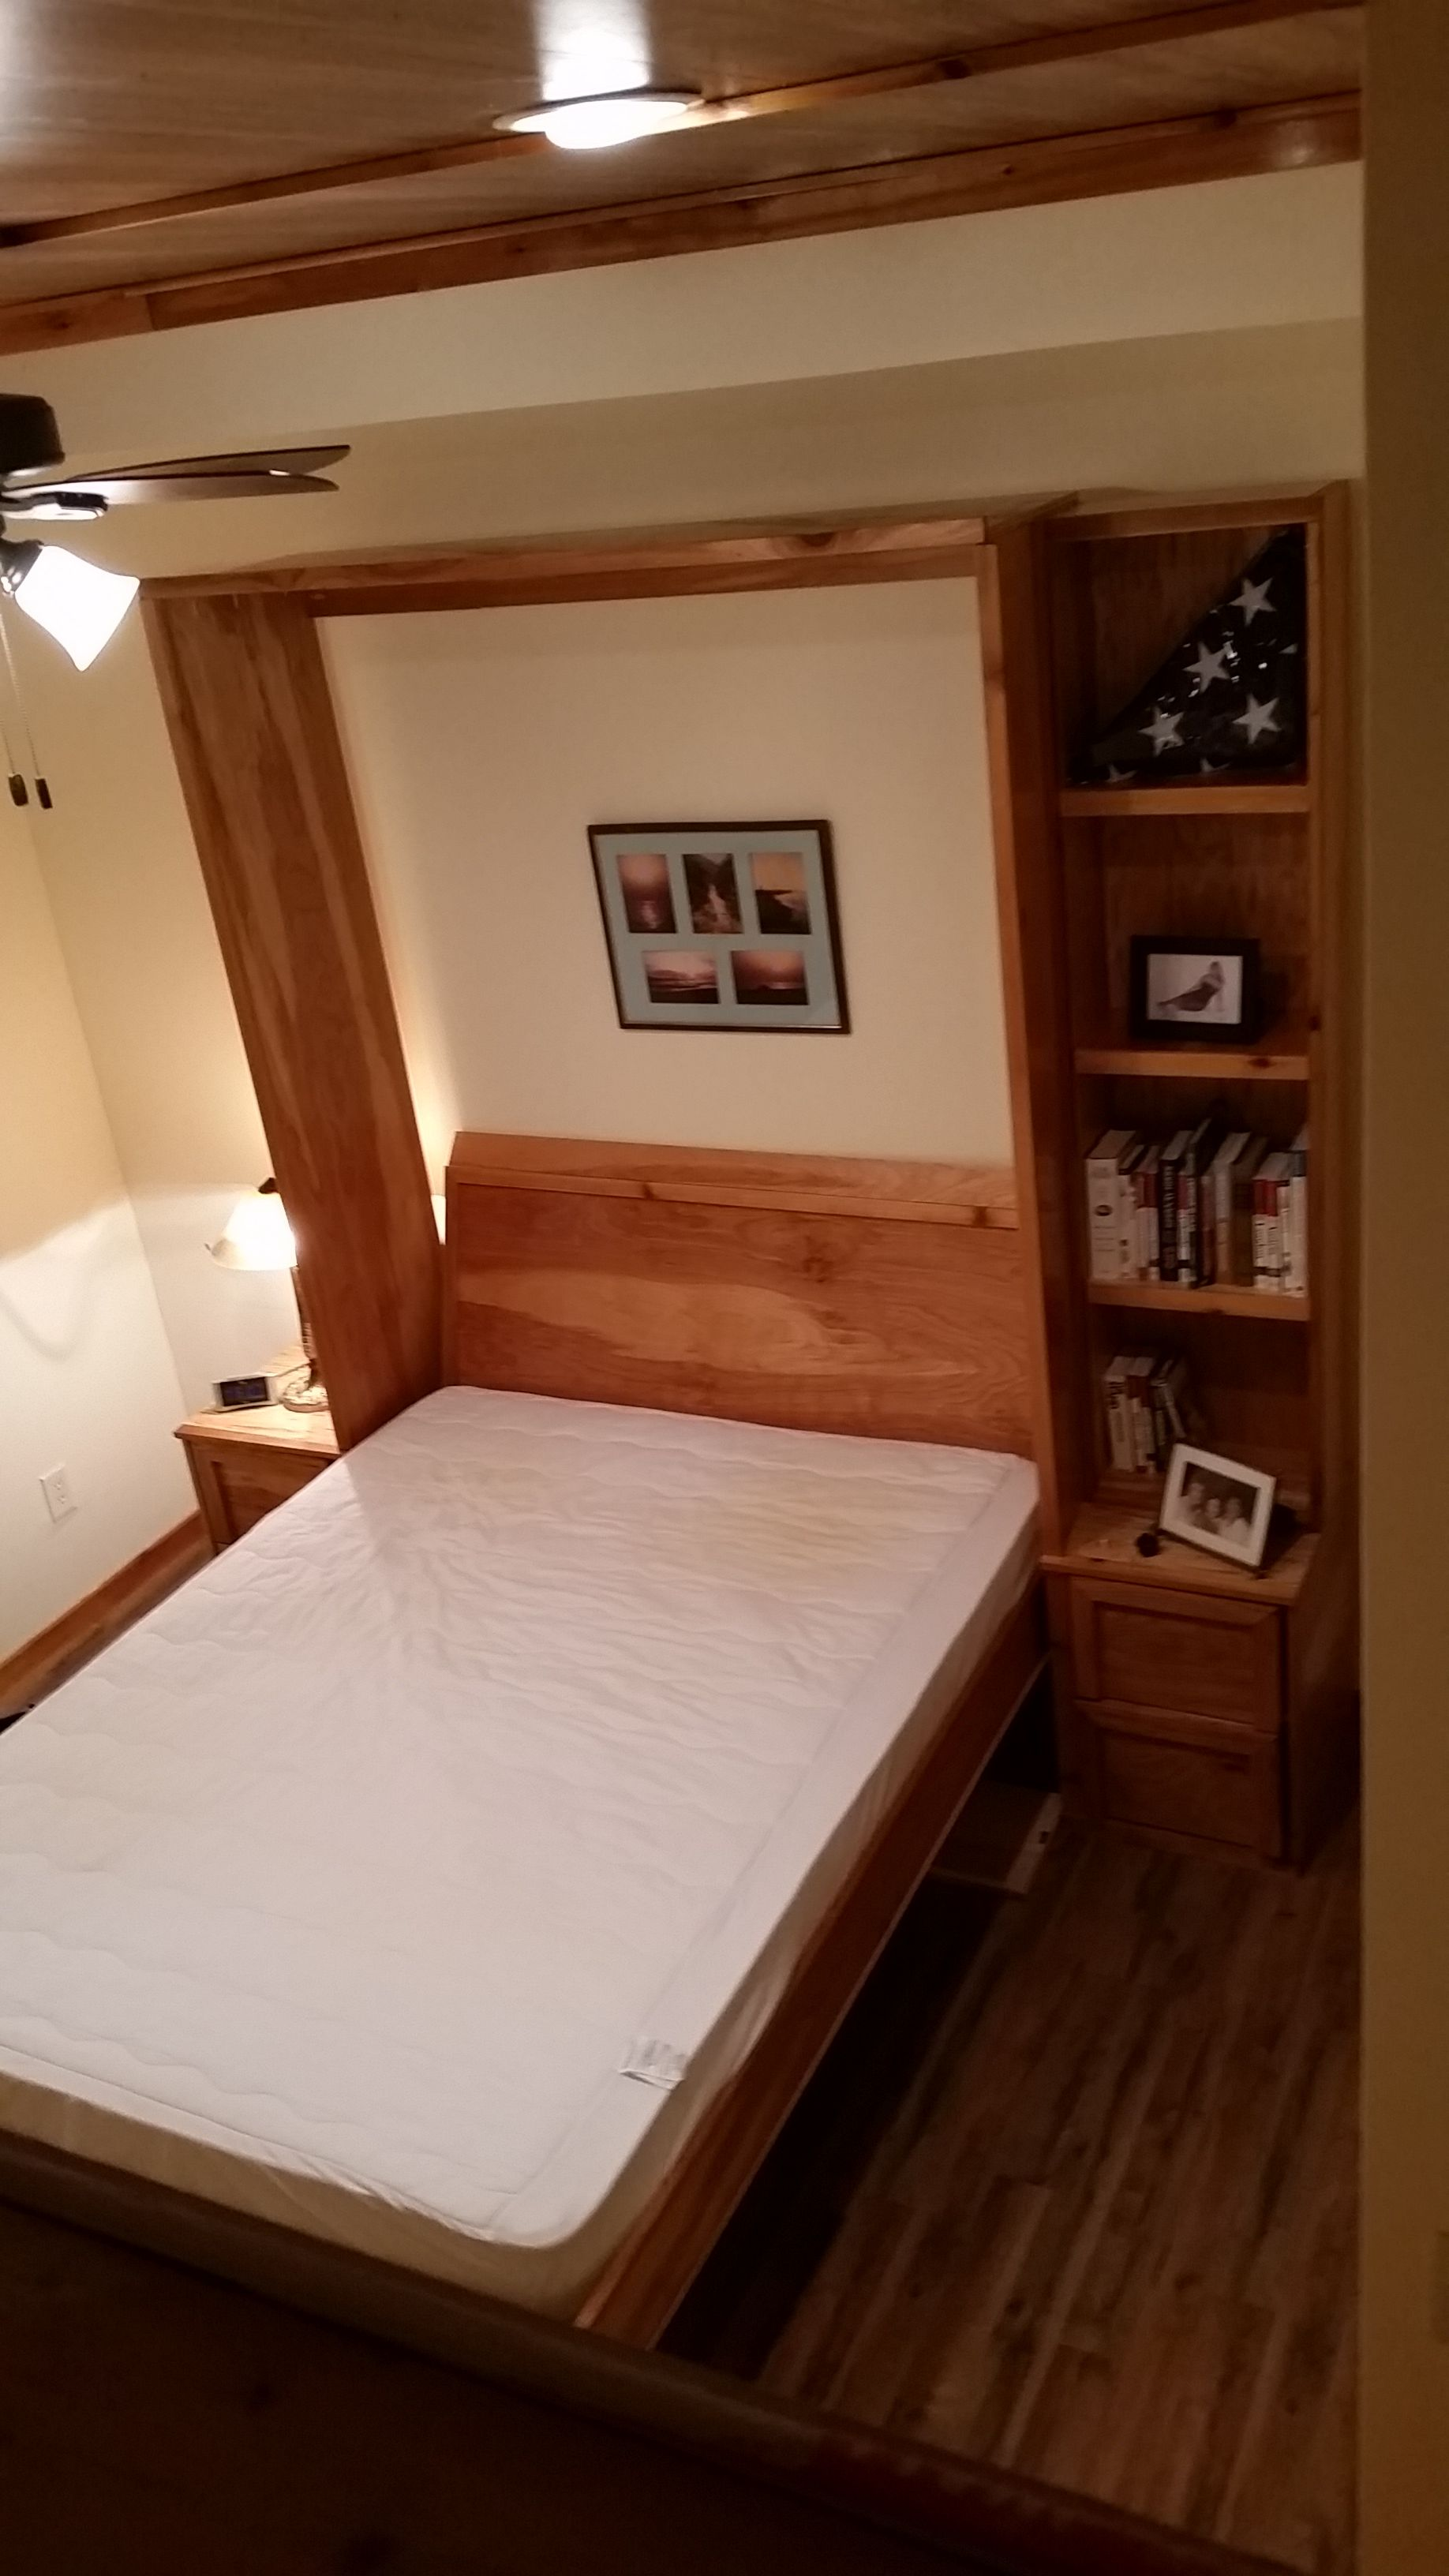 Diy Murphy Bed Without Expensive Hardware B Boat Swivel